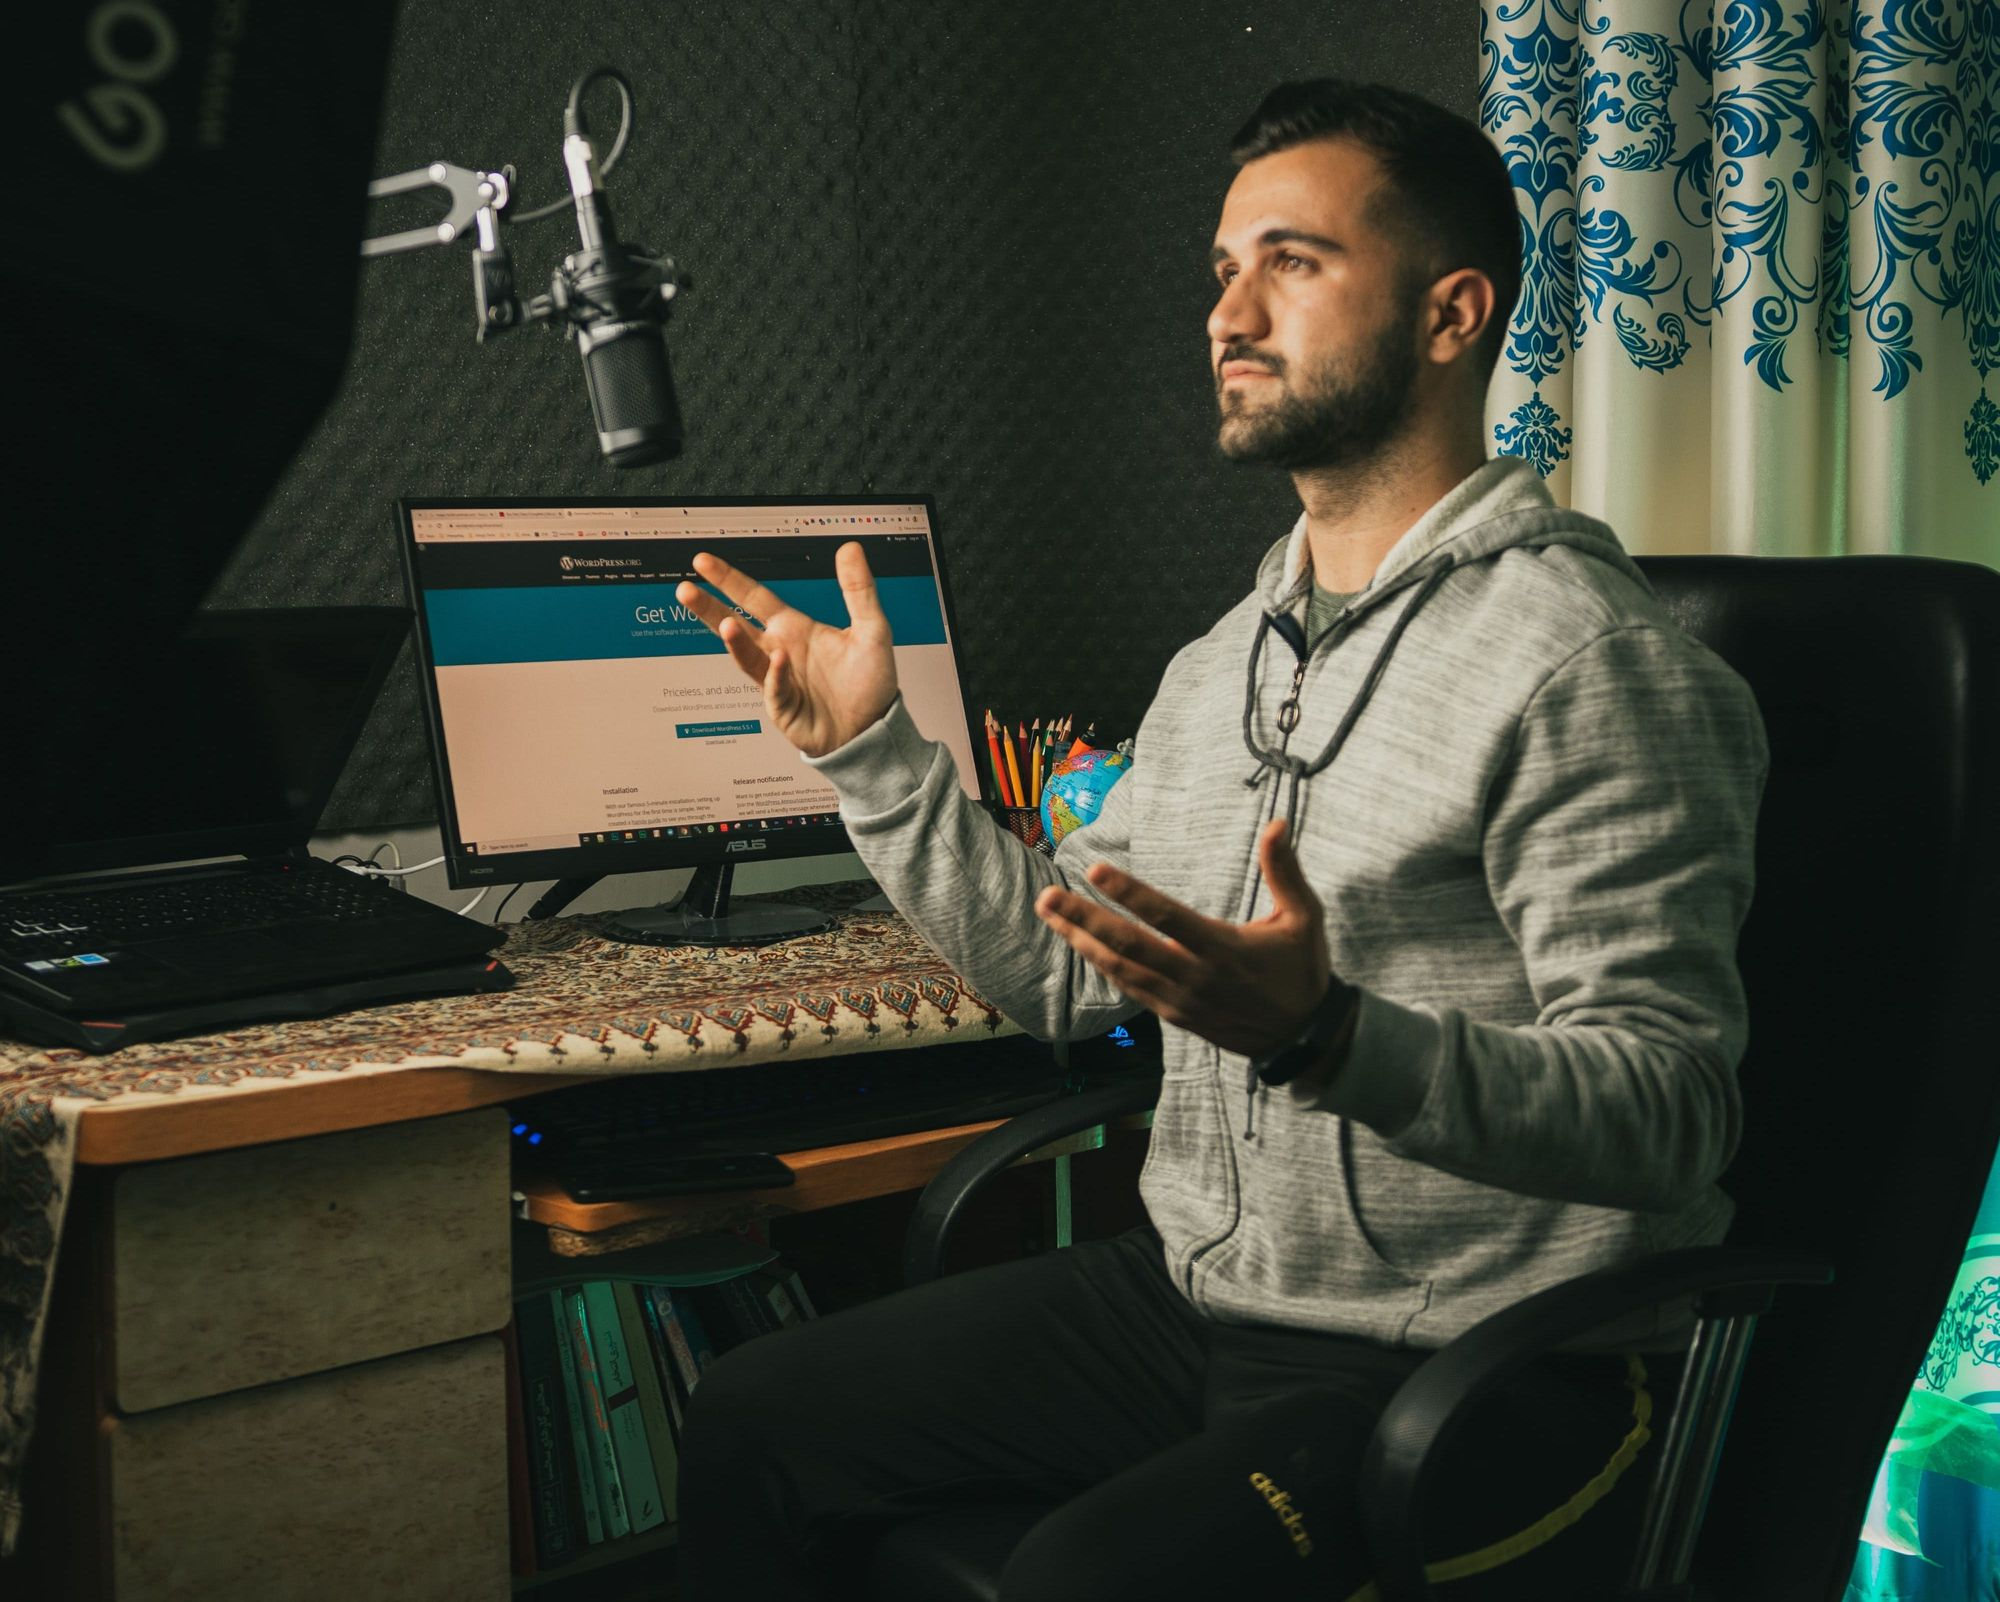 man-at-computer-with-microphone